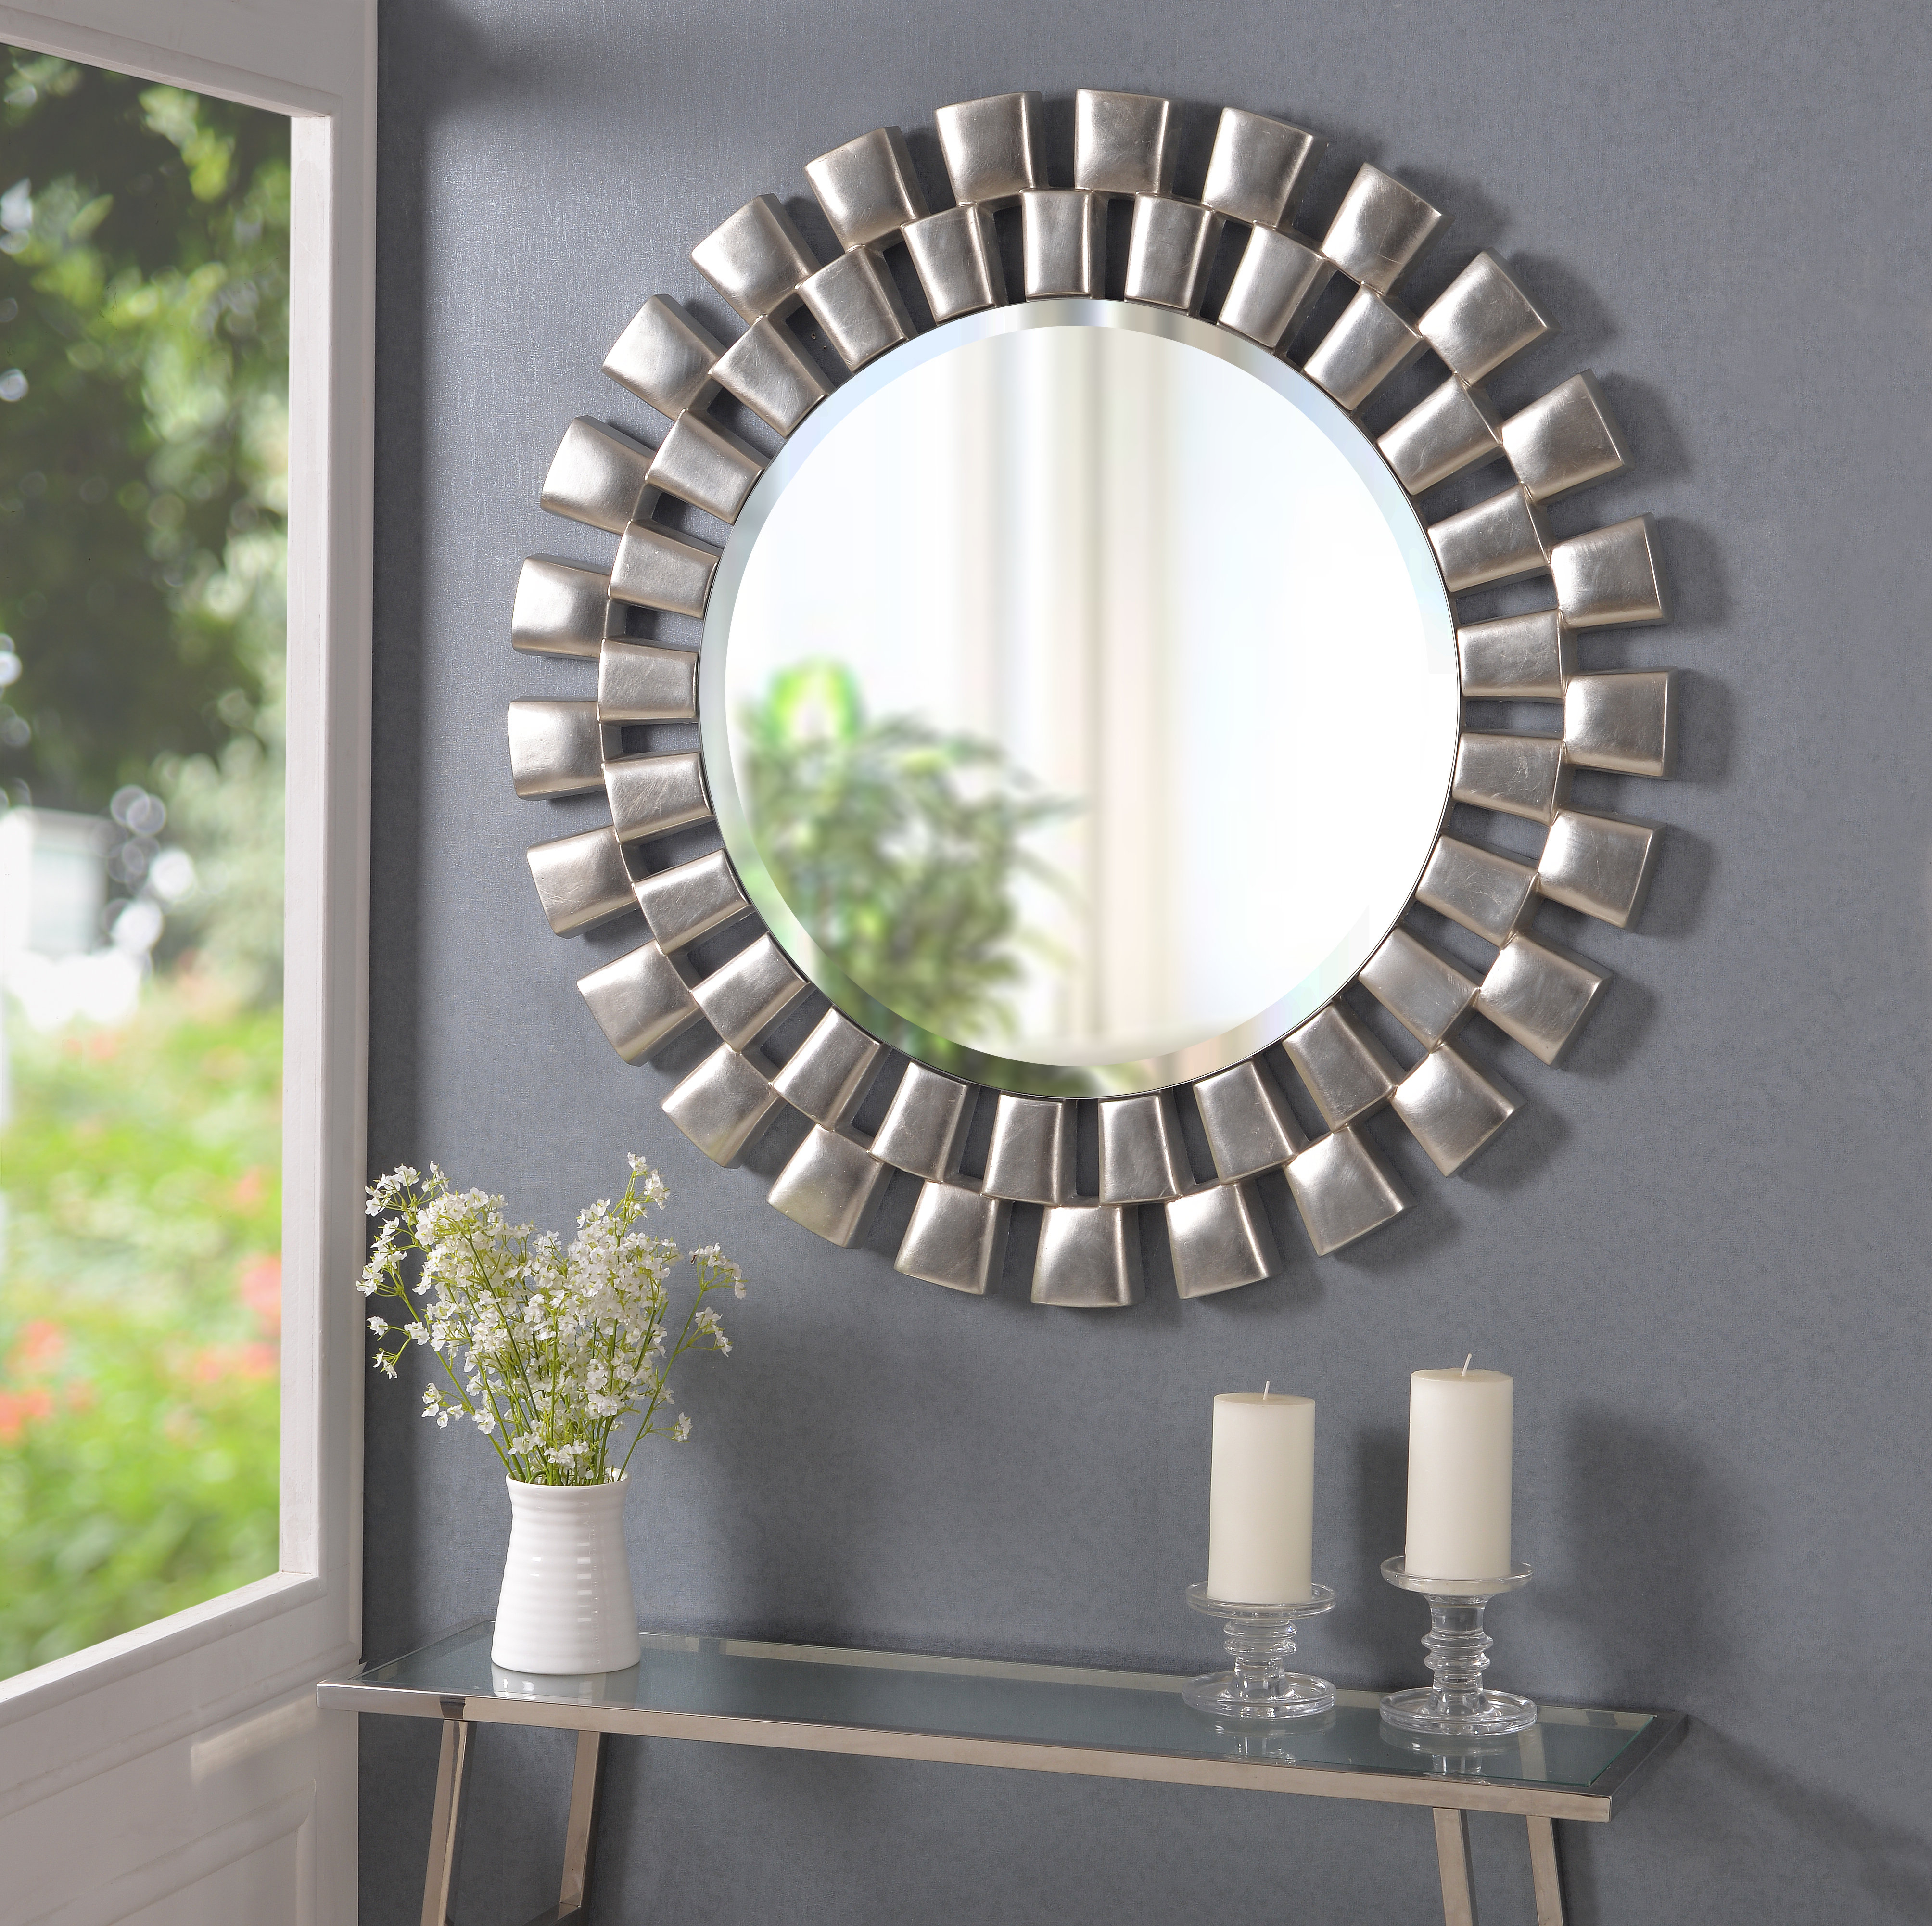 Willa Arlo Interiors Glam Beveled Accent Mirror Within Preferred Brynn Accent Mirrors (View 19 of 20)